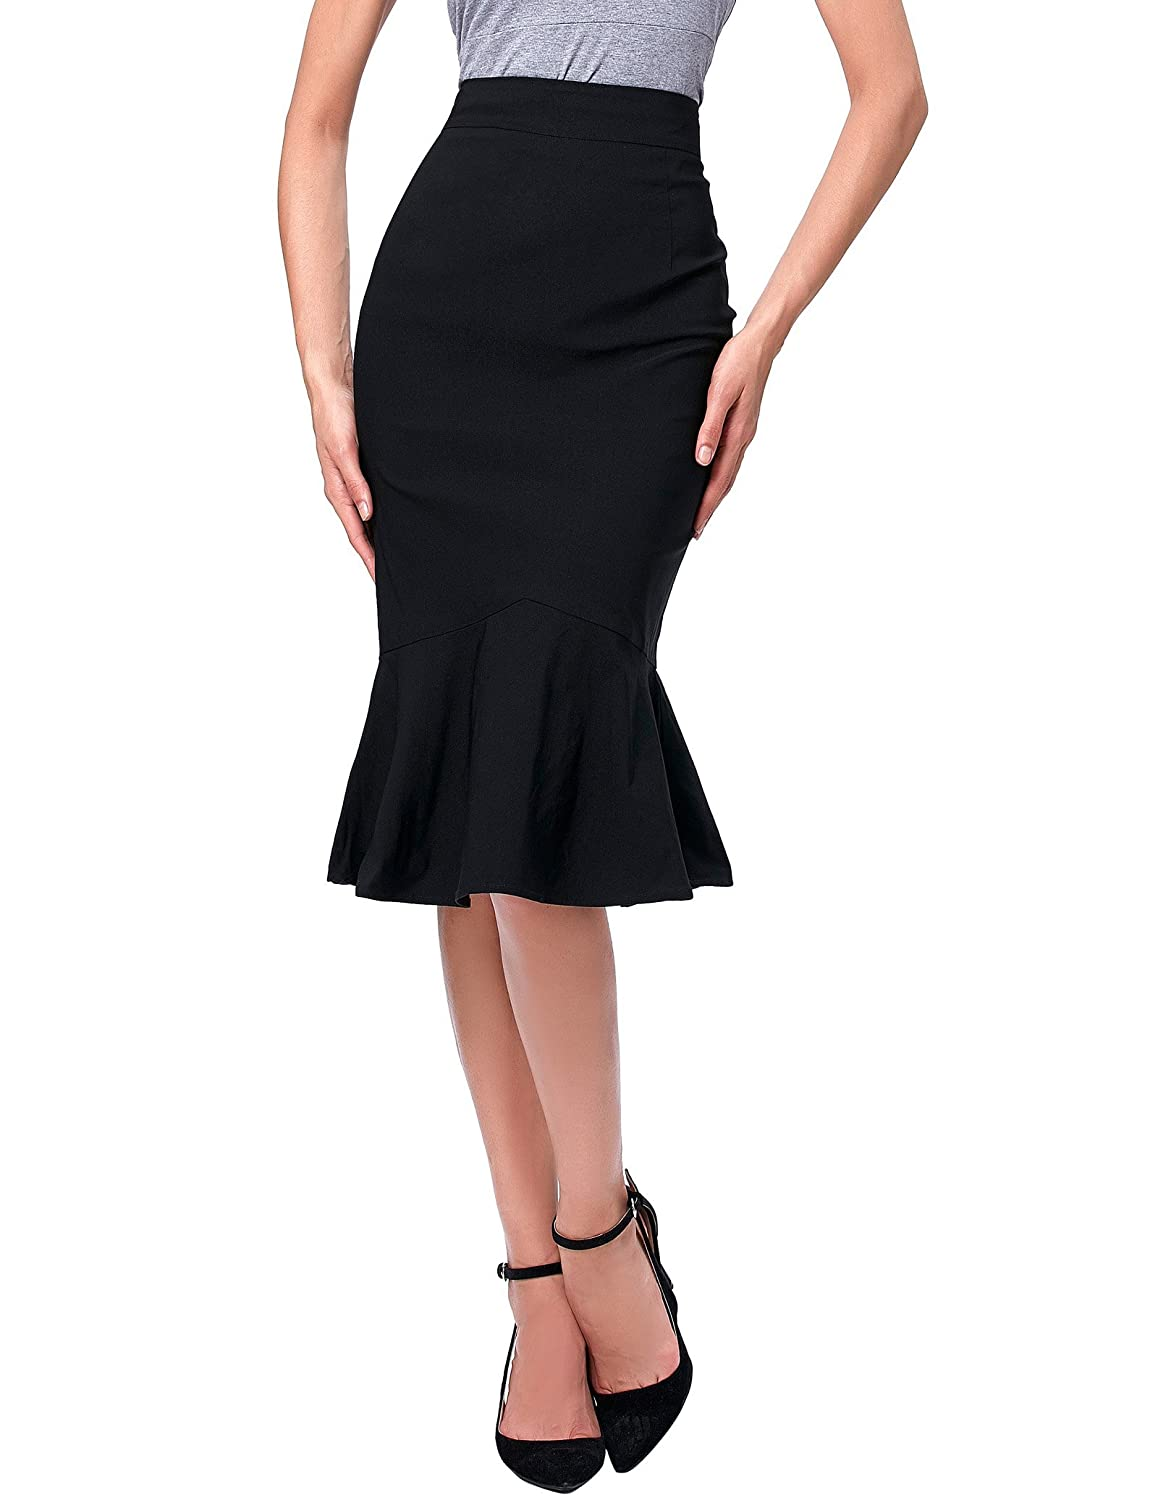 Agent Peggy Carter Costume, Dress, Hats Kate Kasin Womens Wear to Work Stretchy Pencil Skirts $16.99 AT vintagedancer.com